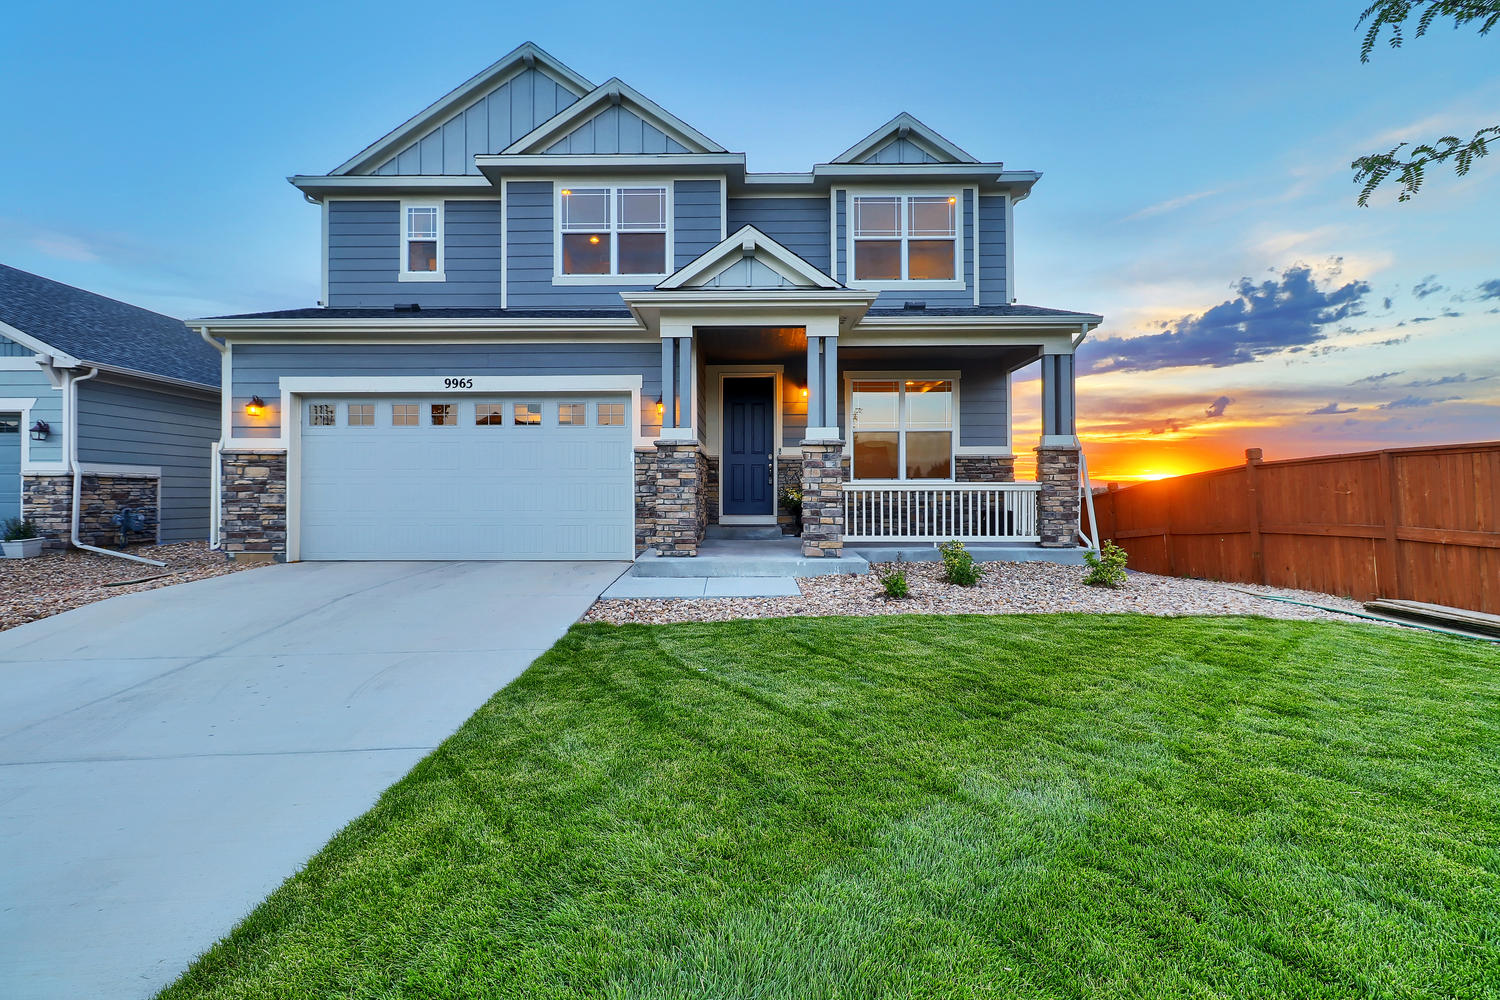 Single Family Home for Active at Overlook spectacular panoramic views 9965 Fort Worth Ct Parker, Colorado 80134 United States